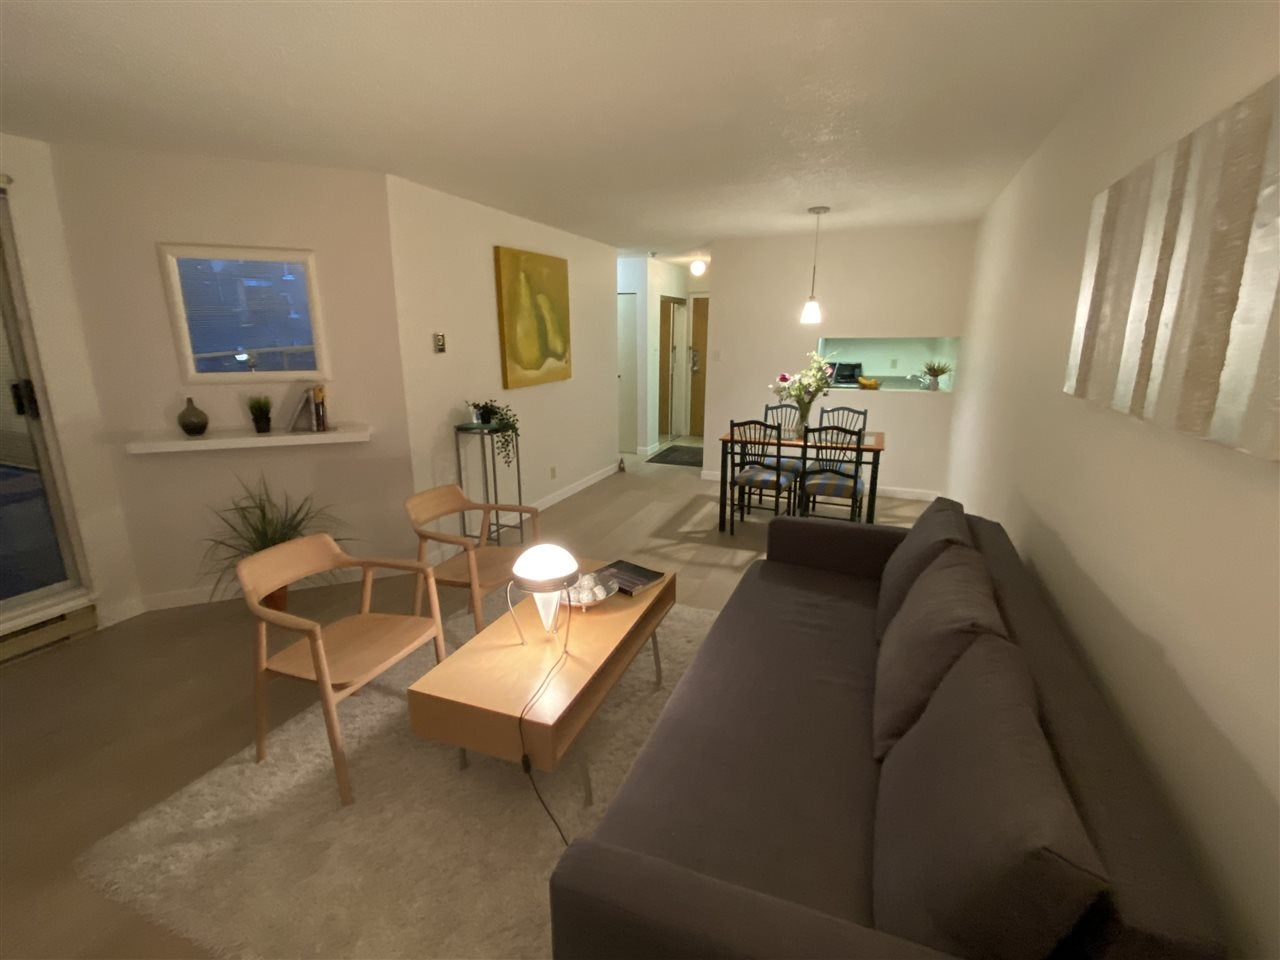 311 1050 BROUGHTON STREET - West End VW Apartment/Condo for sale, 1 Bedroom (R2531964) - #1